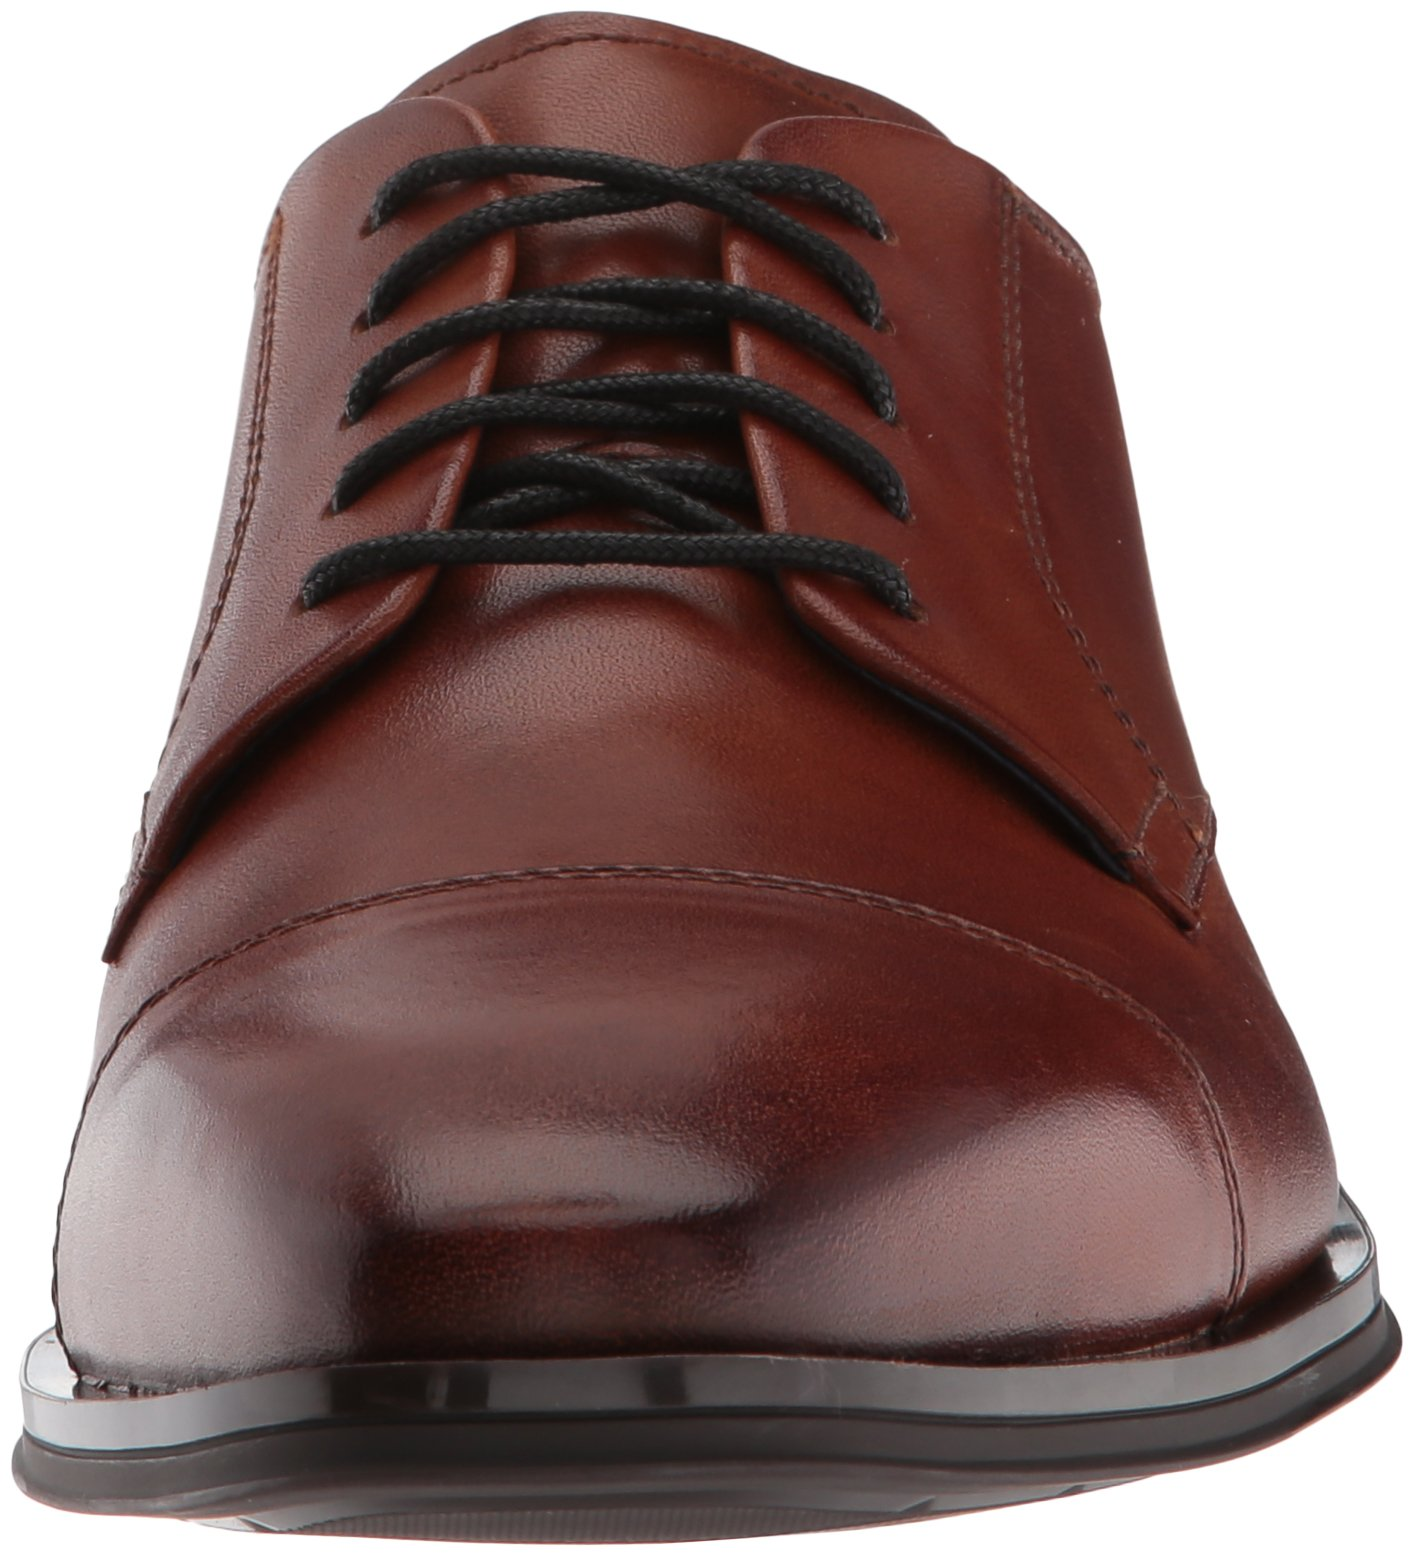 Cole Haan Men's Dawes Grand Cap Toe Oxford, British Tan, 11 Medium US by Cole Haan (Image #4)